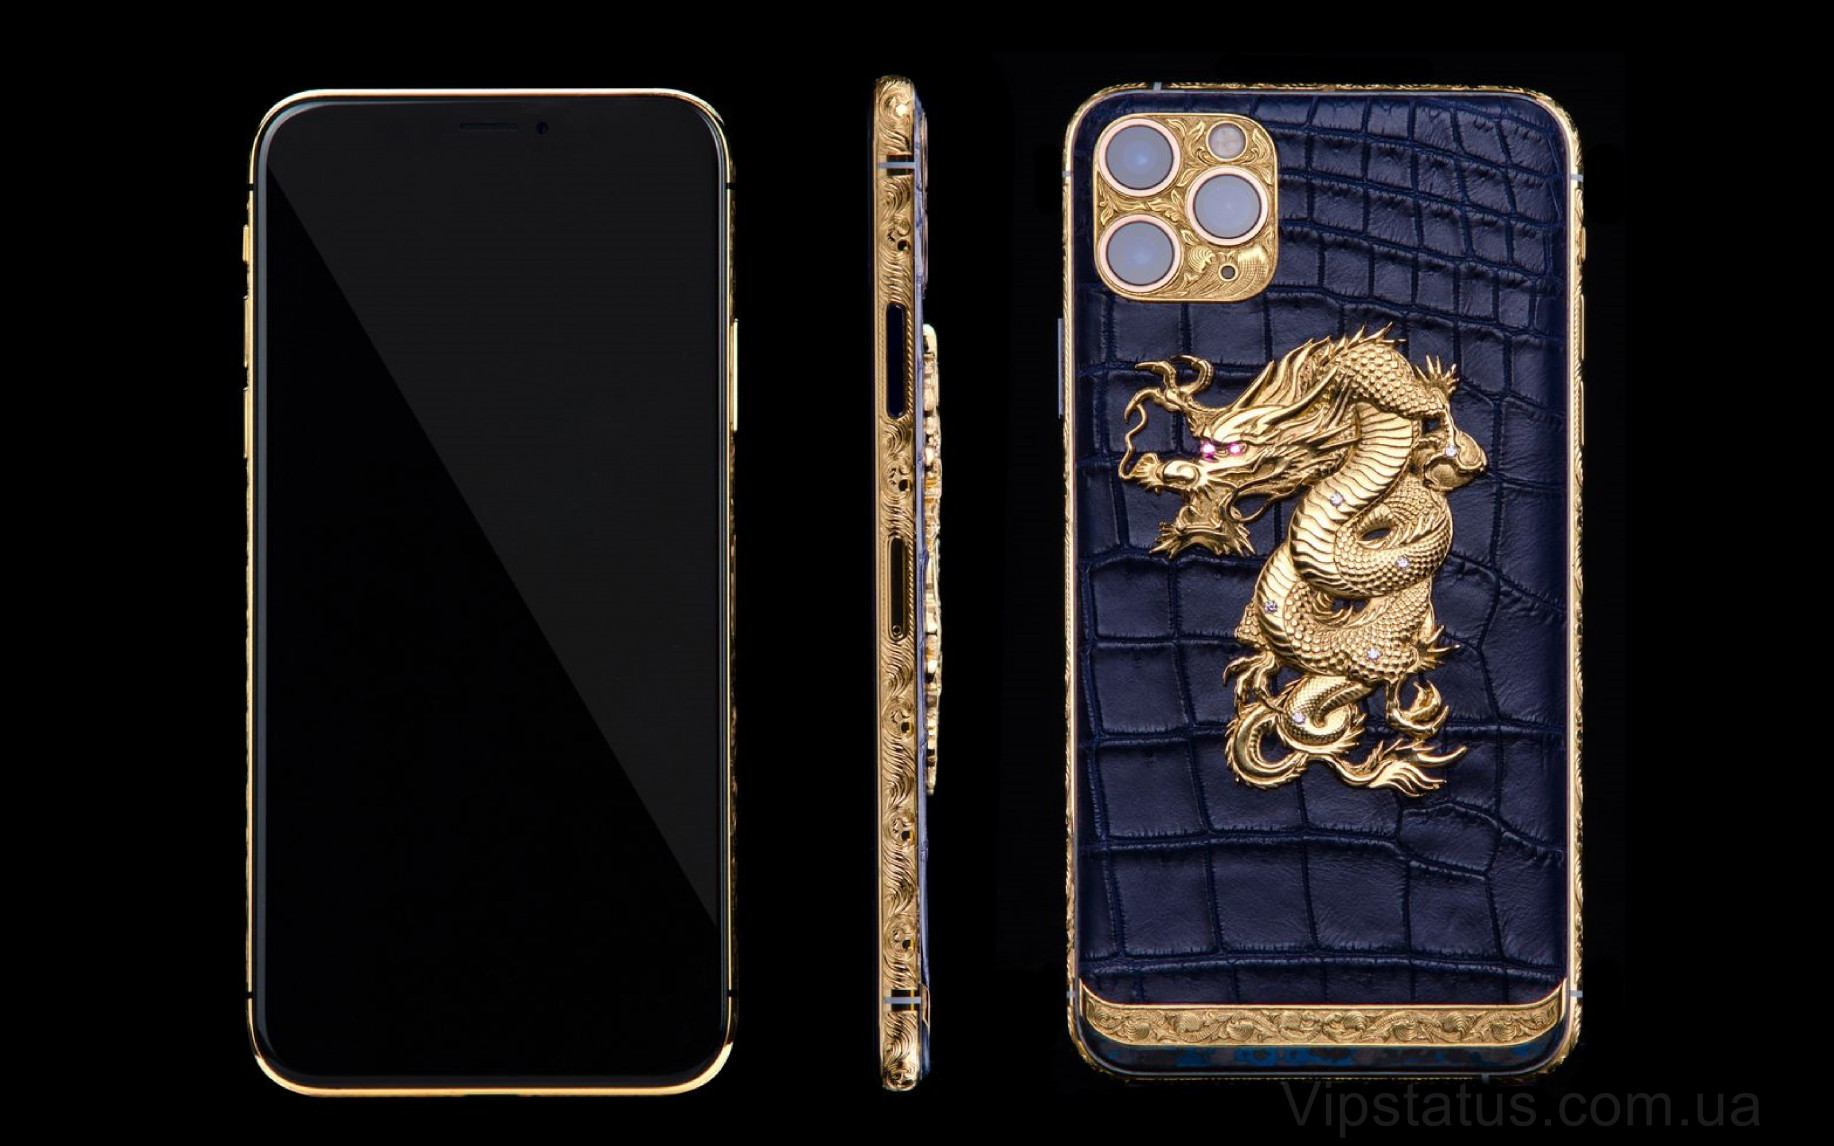 Elite Oriental Dragon IPHONE 12 PRO MAX 512 GB Oriental Dragon IPHONE 12 PRO MAX 512 GB image 6